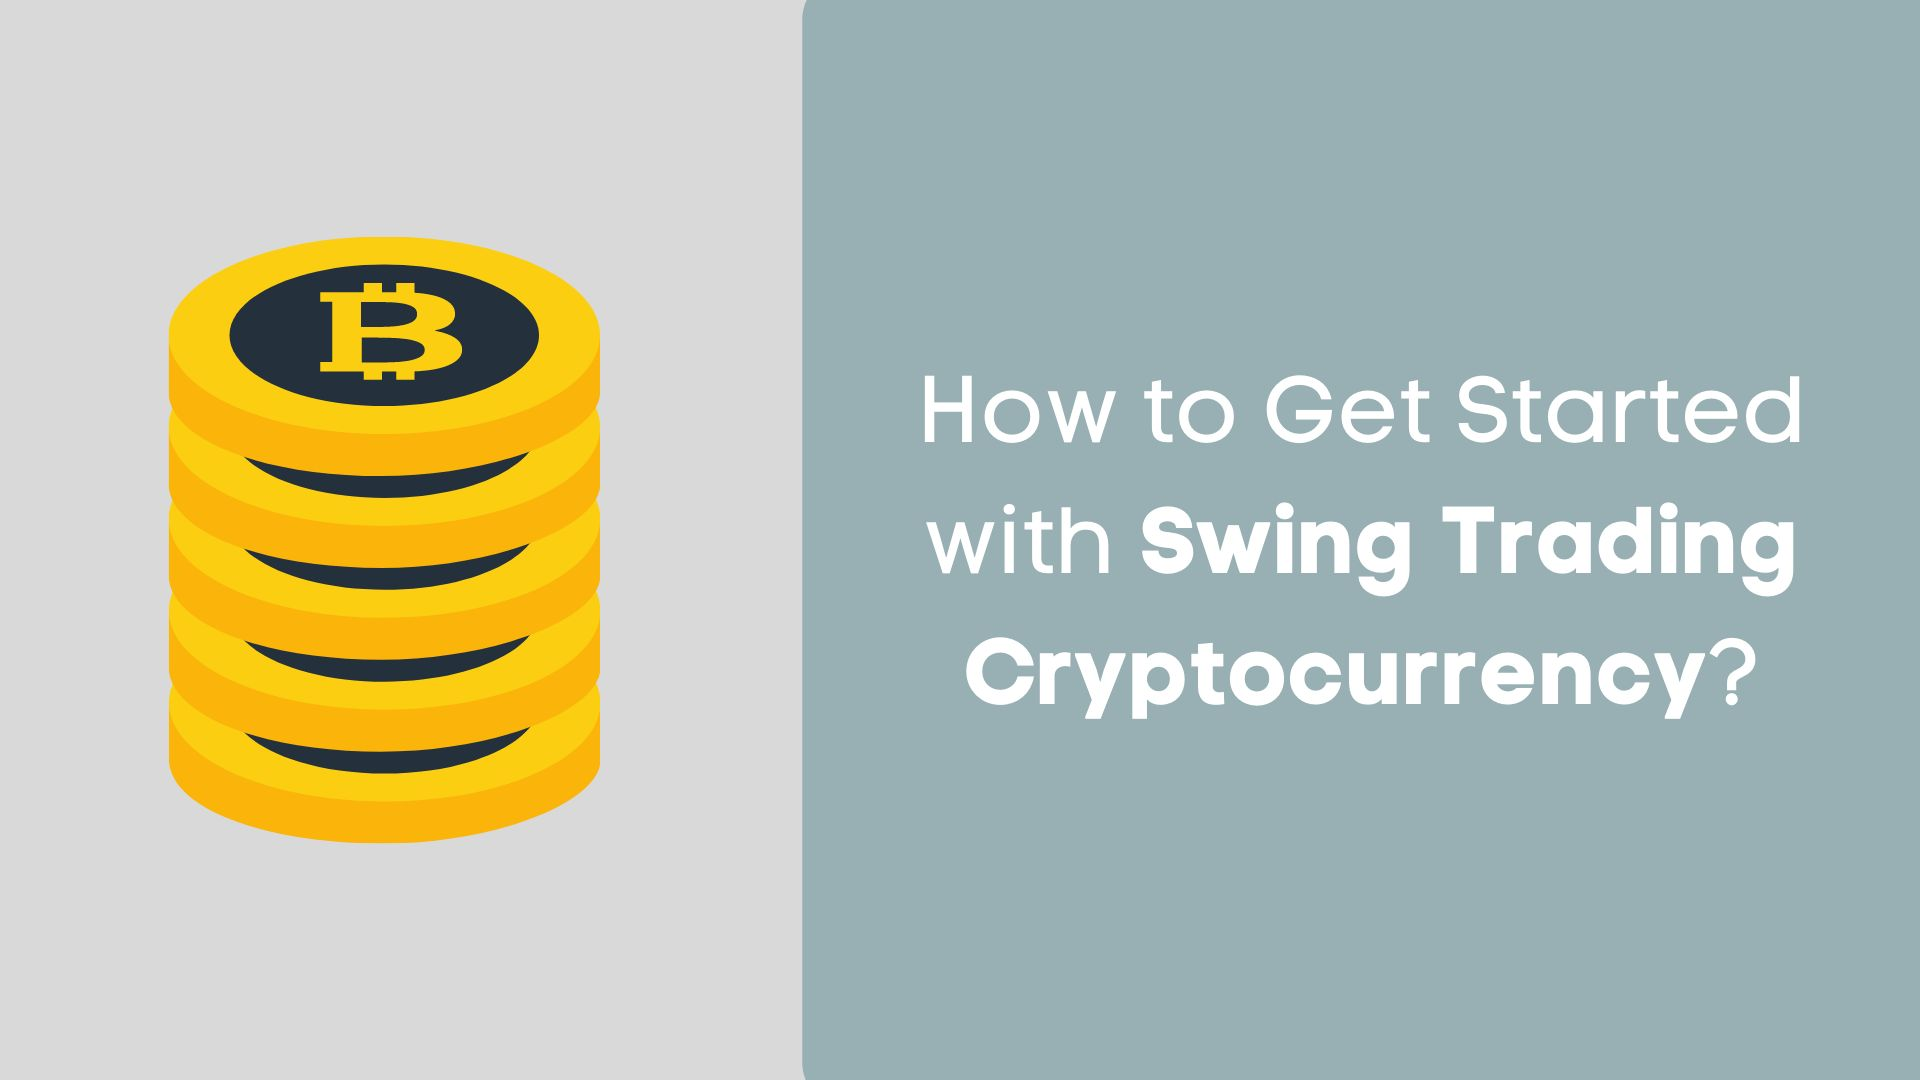 How to Get Started with Swing Trading Cryptocurrency?